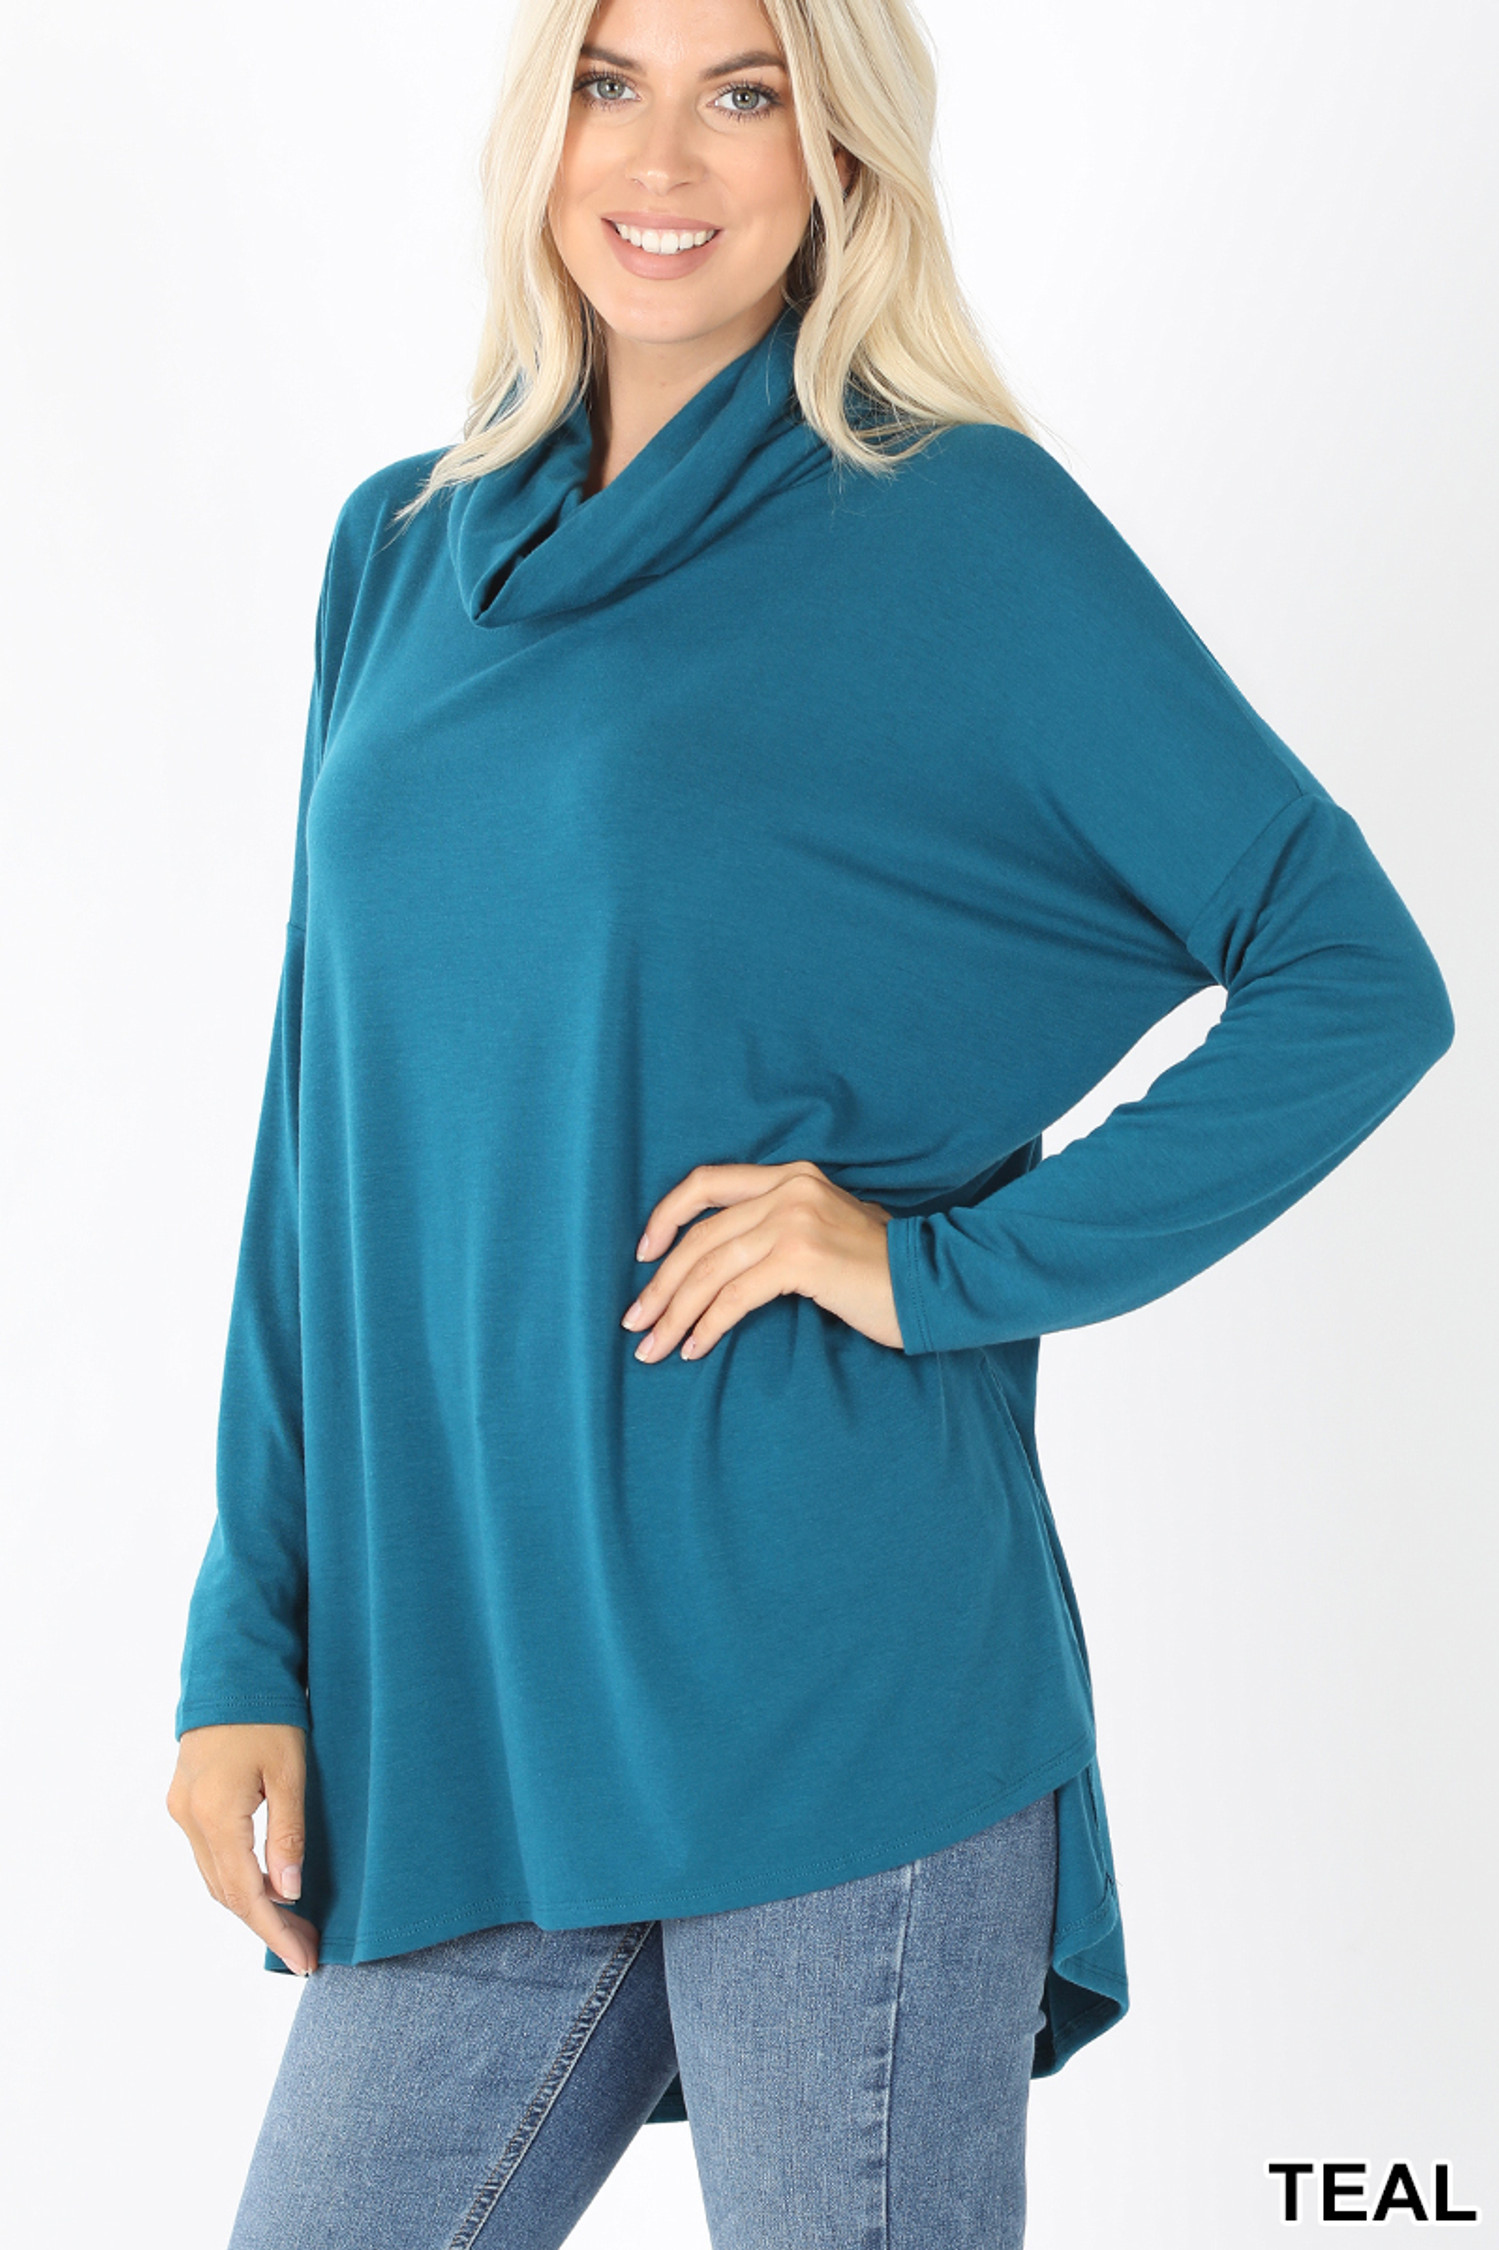 45 Degree Front image of Teal Cowl Neck Hi-Low Long Sleeve Top